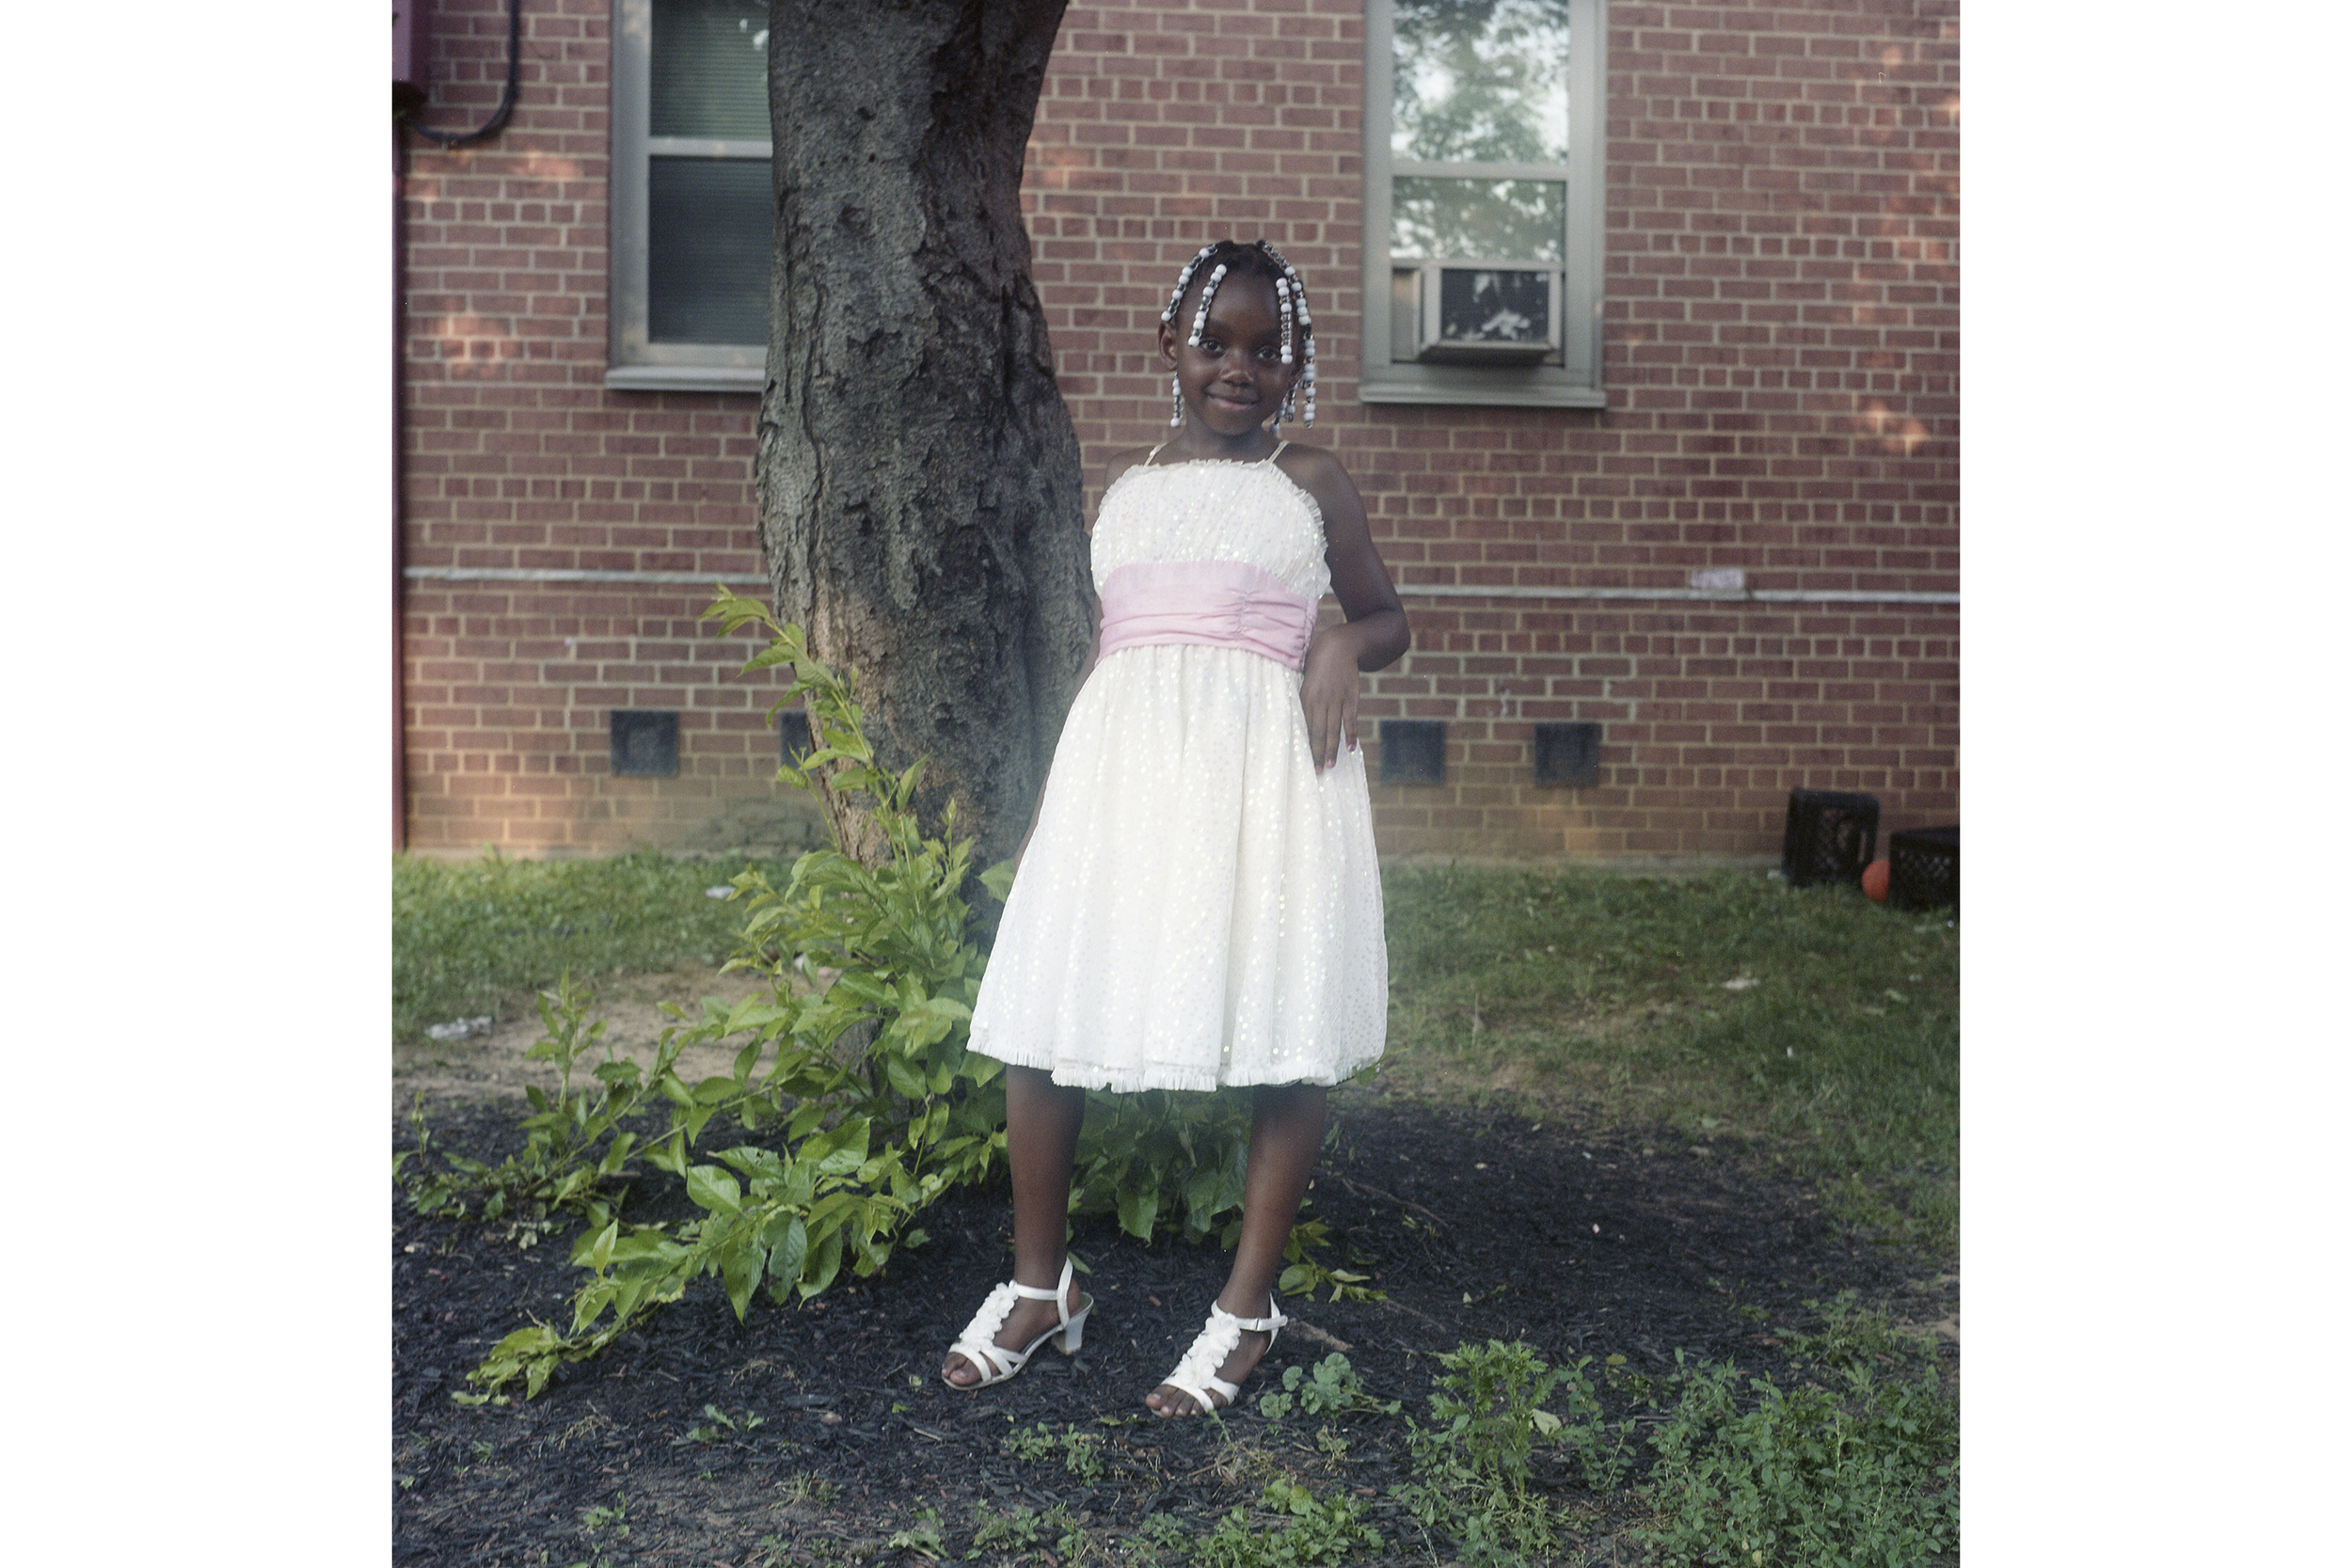 """""""You got a lot of great kids. Going to school, doing great things,"""" says Herbie, an active member of the community who grew up here himself. This young girl was dressed up for her first grade graduation."""